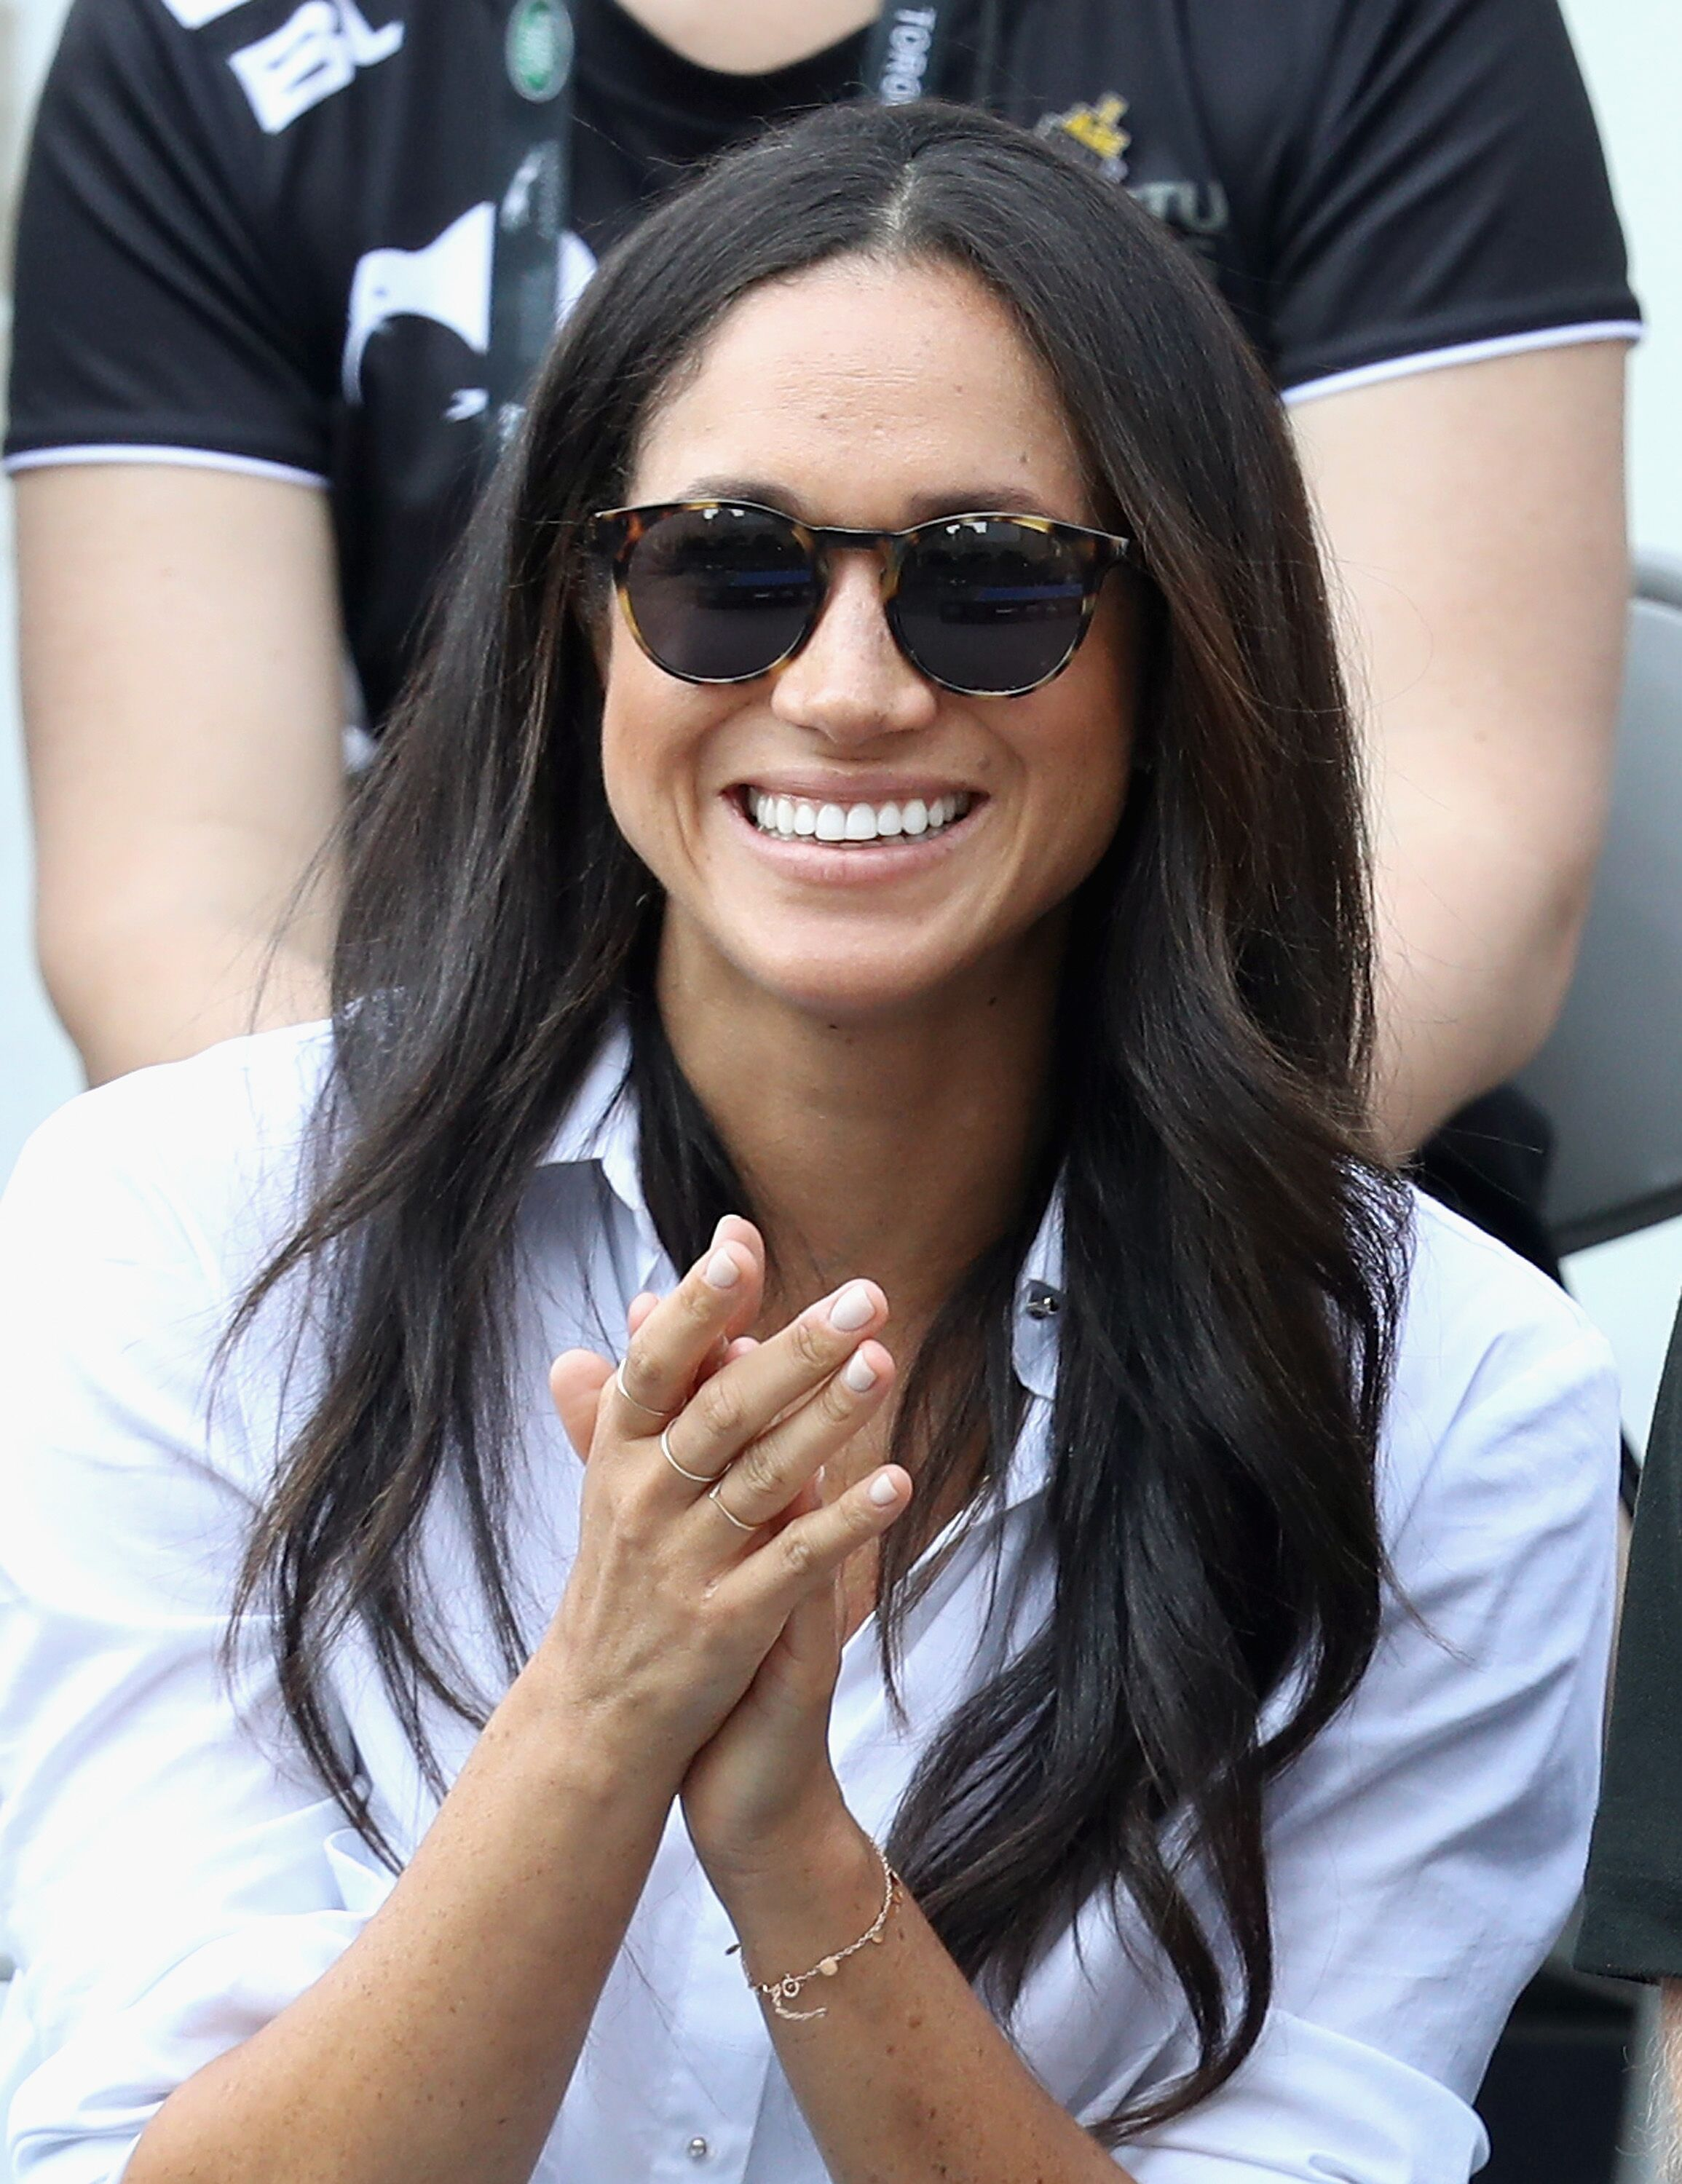 Meghan Markle assiste à un match de tennis en fauteuil roulant pendant les Jeux Invictus 2017 au Nathan Philips Square le 25 septembre 2017 à Toronto, Canada | Photo : Getty Images